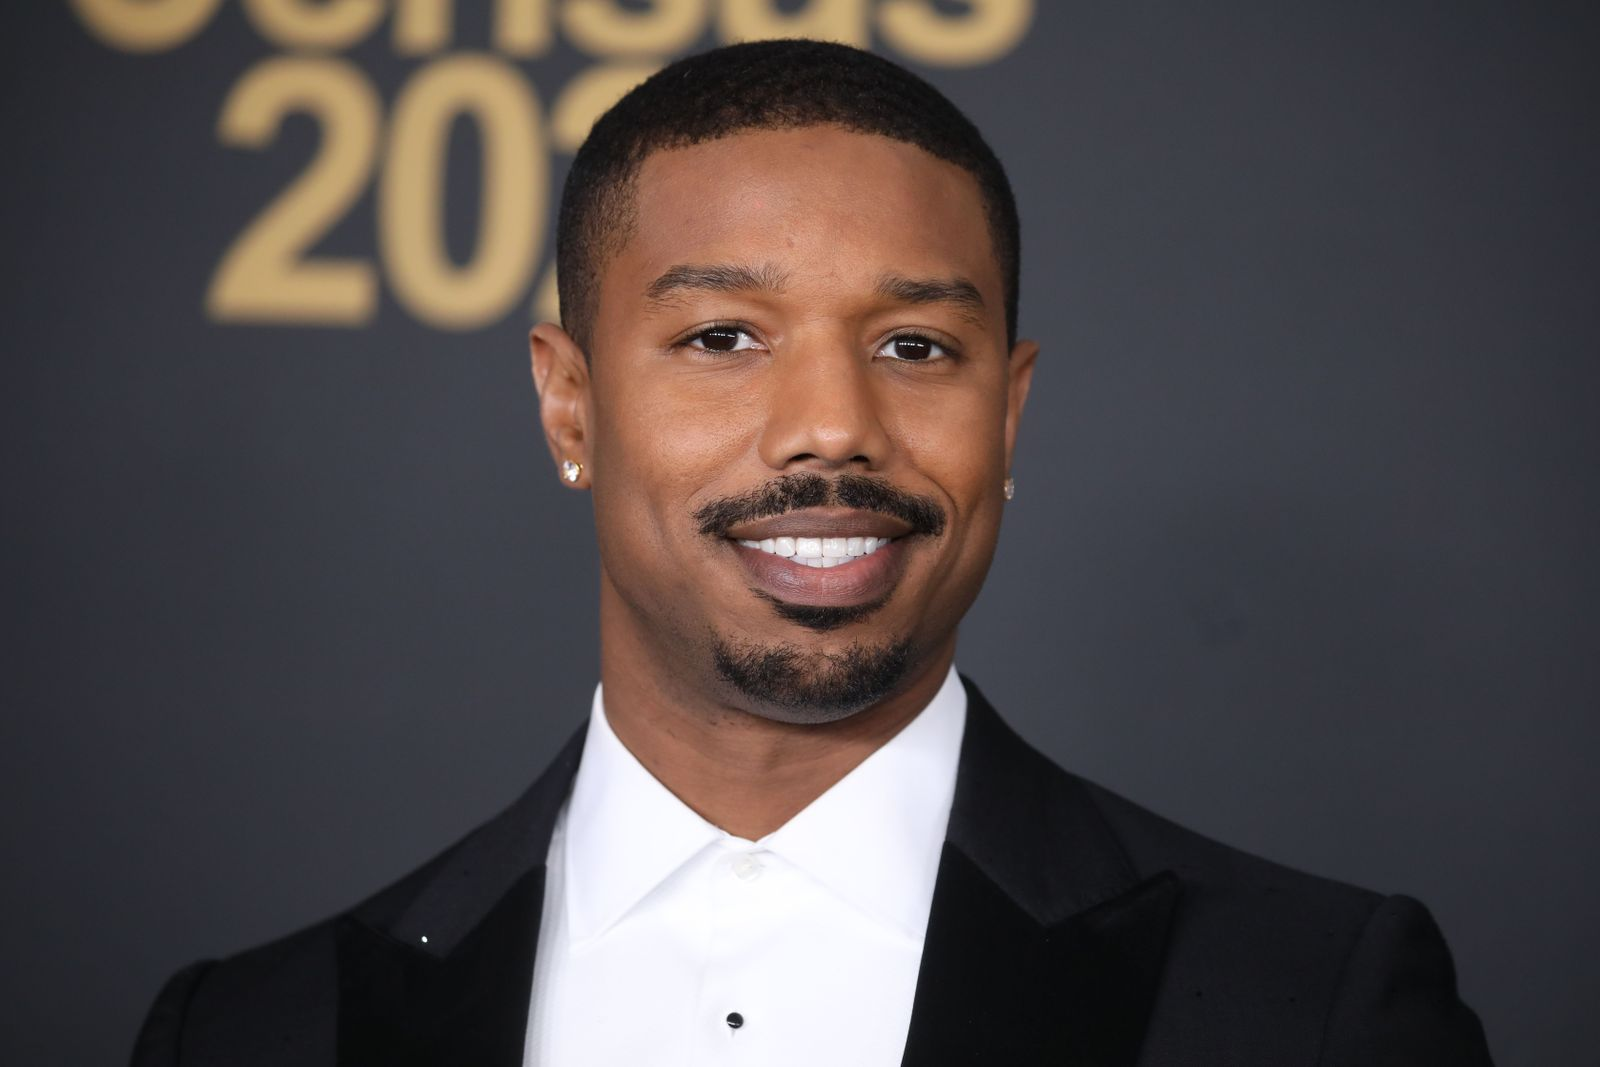 Michael B. Jordan selected as Sexiest Man Alive 2020, Pasadena, USA - 22 Feb 2020